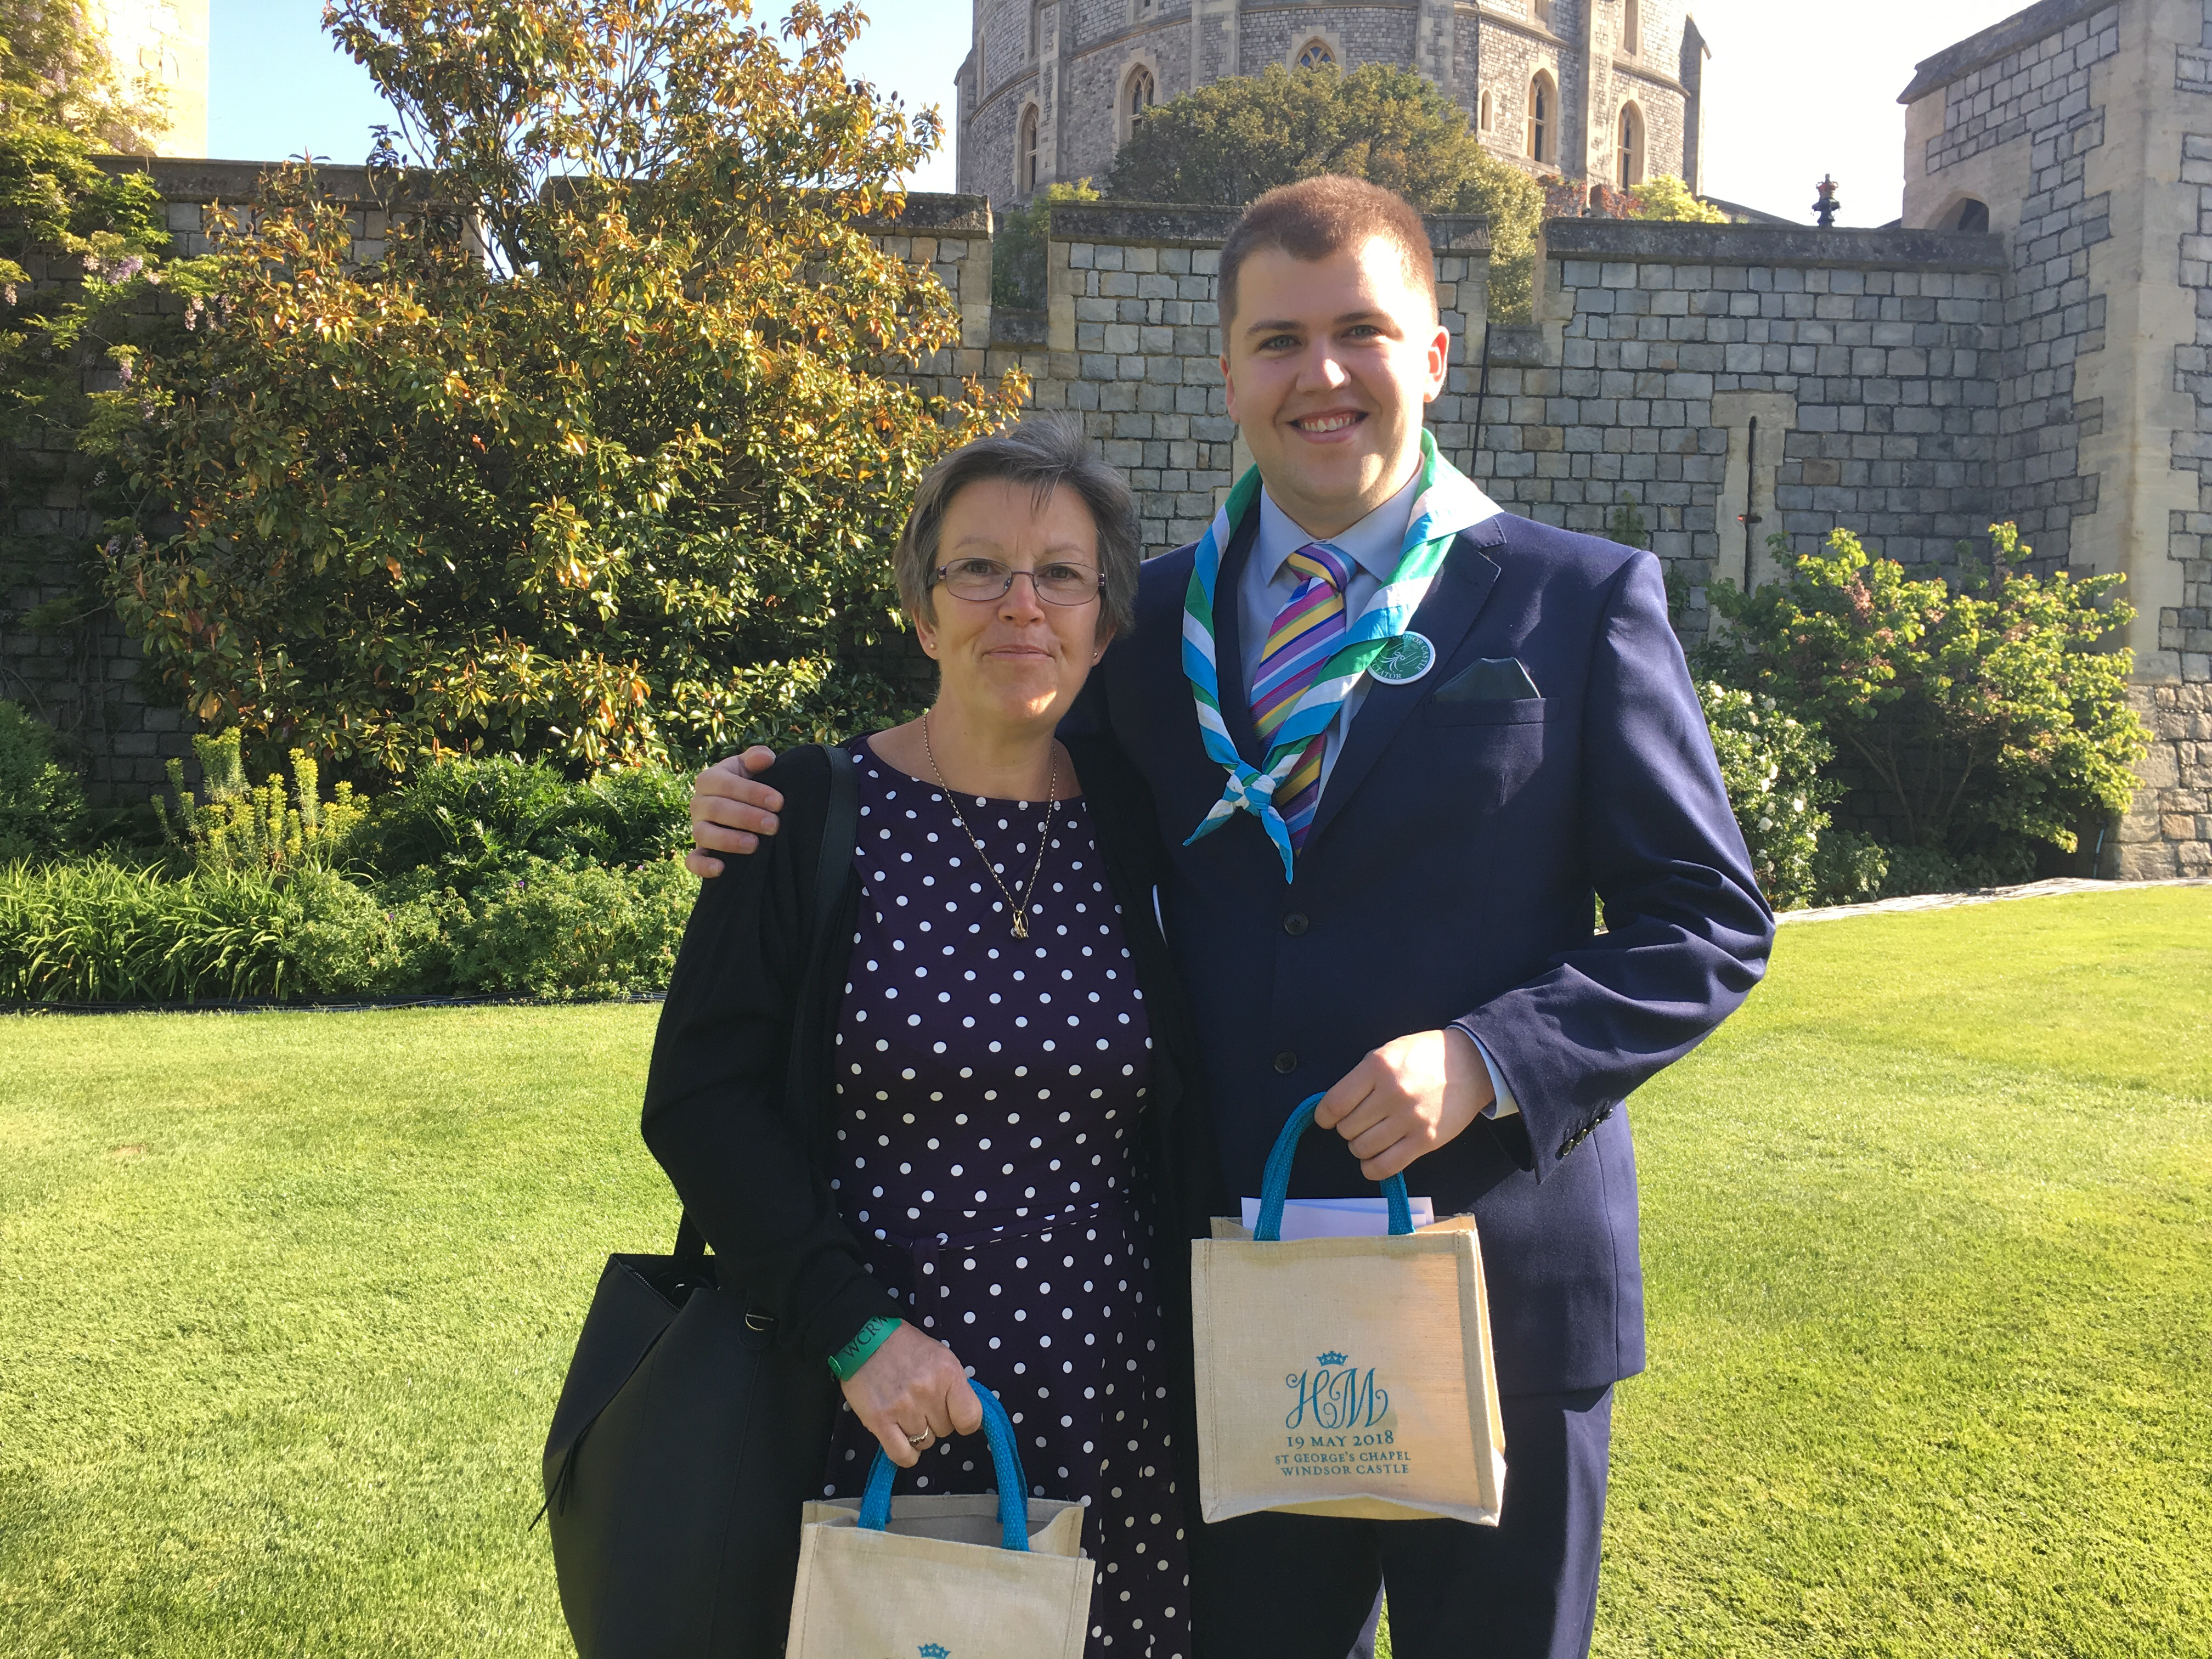 Joshua McLeod, right, and his mother, Sue McLeod, in the grounds of Windsor Castle for the wedding of Prince Harry and Meghan Markle on May 19, 2018.